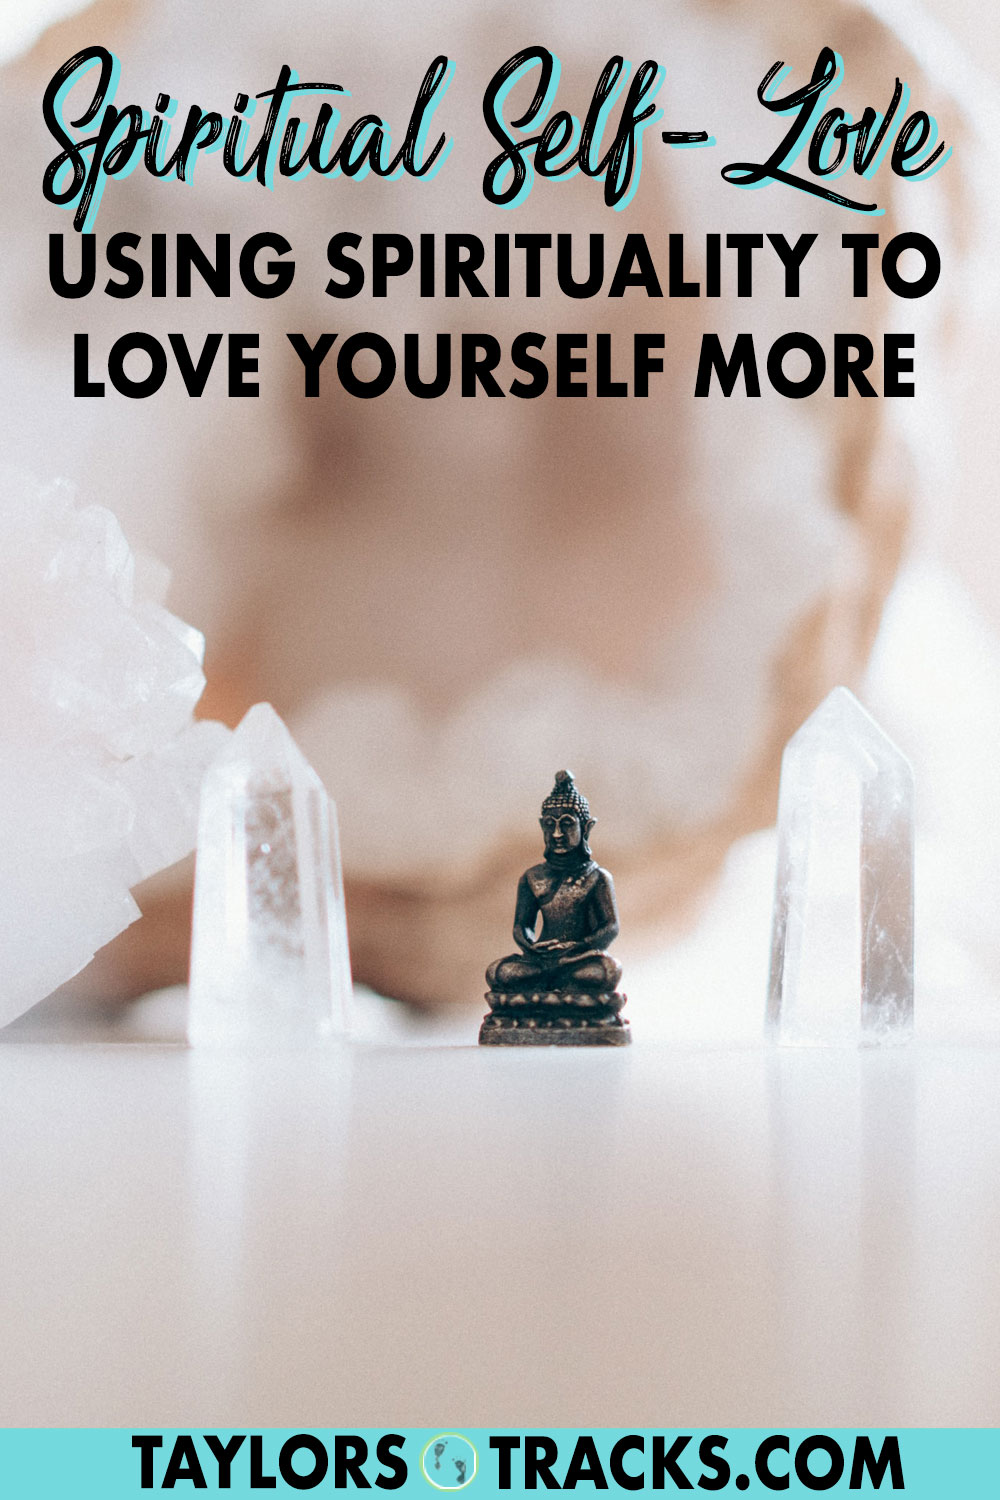 Spiritual self-love allows you to gain a deeper understanding and connection to yourself using simple spiritual practices. These 10 practices will develop your self-love, self-care and leave you with a sense of feeling at peace and whole. Click to discover how to become more spiritual and self-loving.